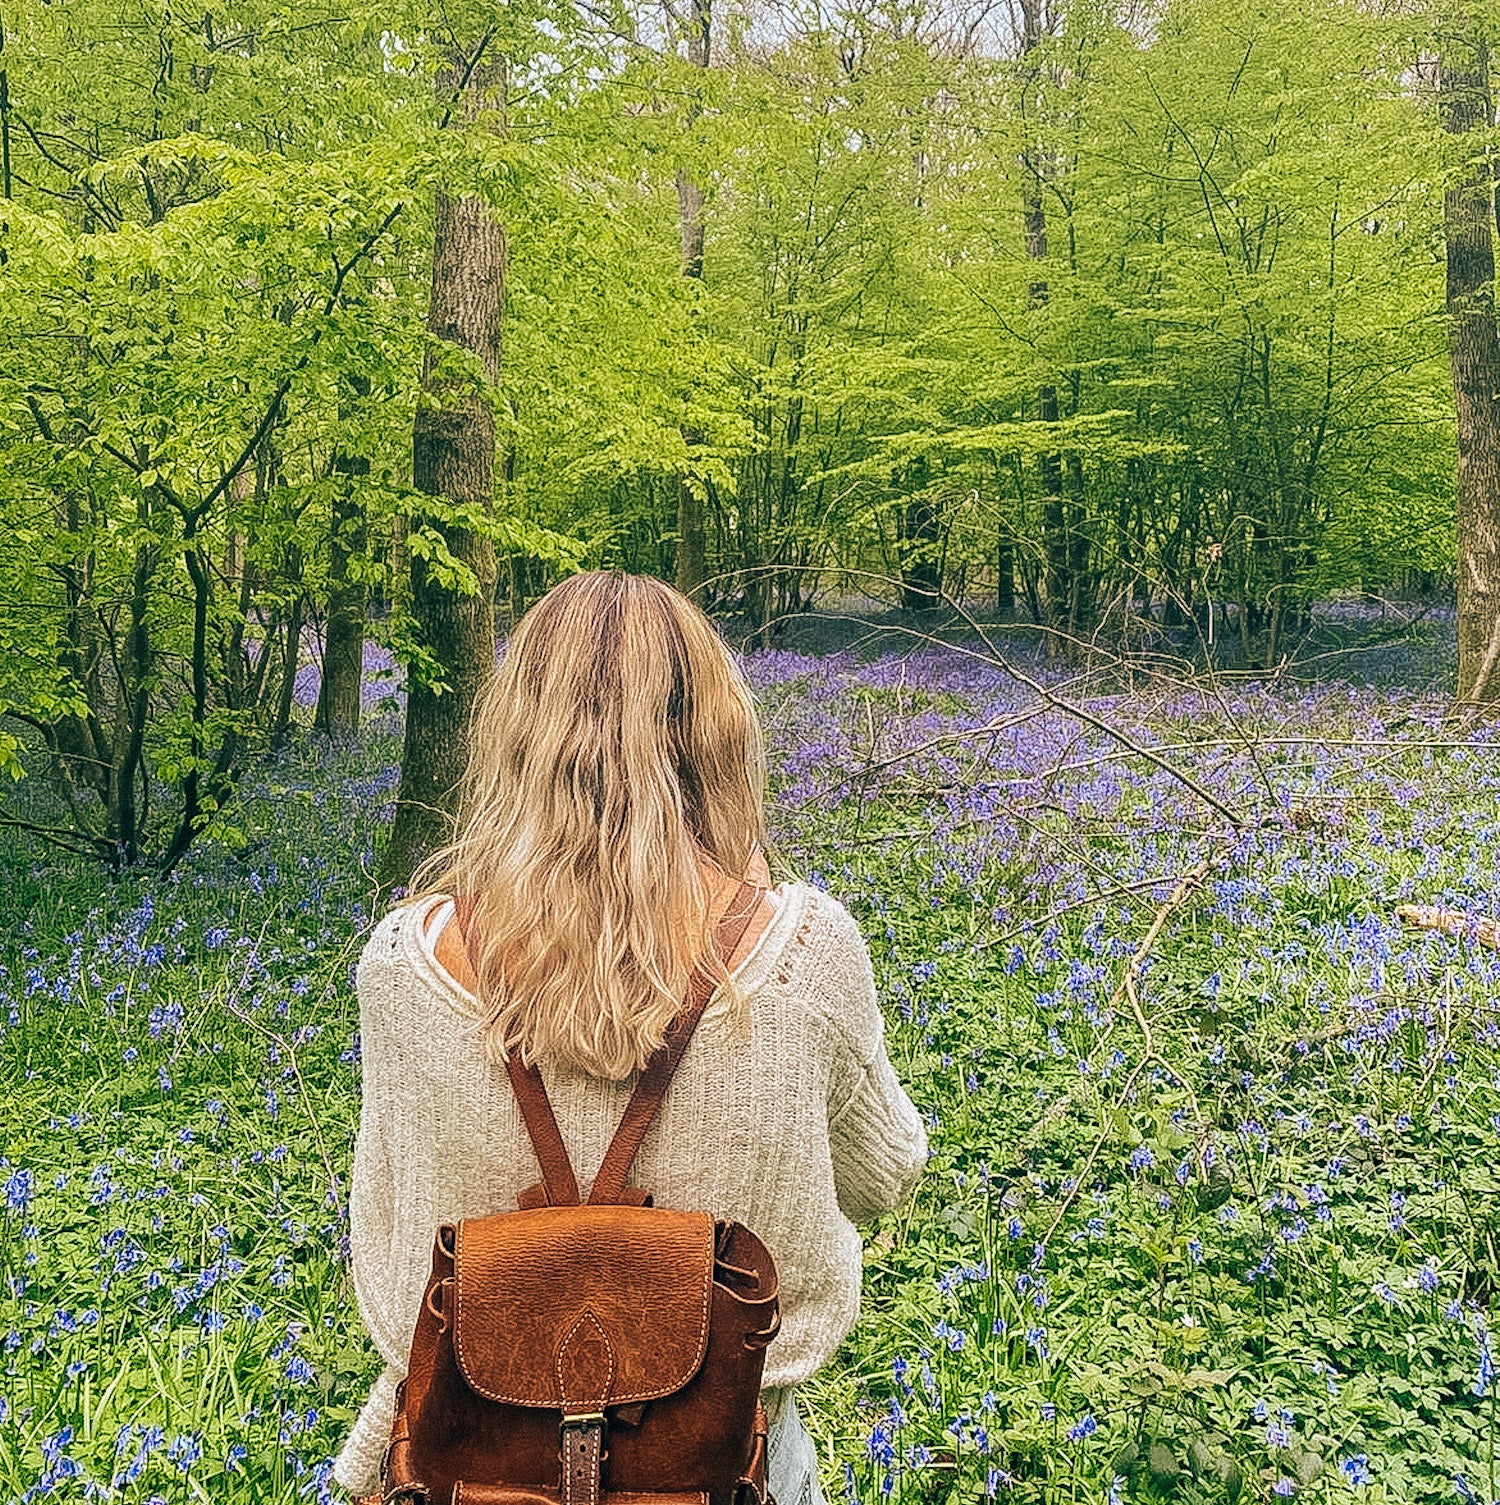 mental health, mental health awareness week, mental health tips, improve your sleep, aromatherapy, bath salts, anxiety, depression, wellbeing tips, wellness blog from Corinne Taylor